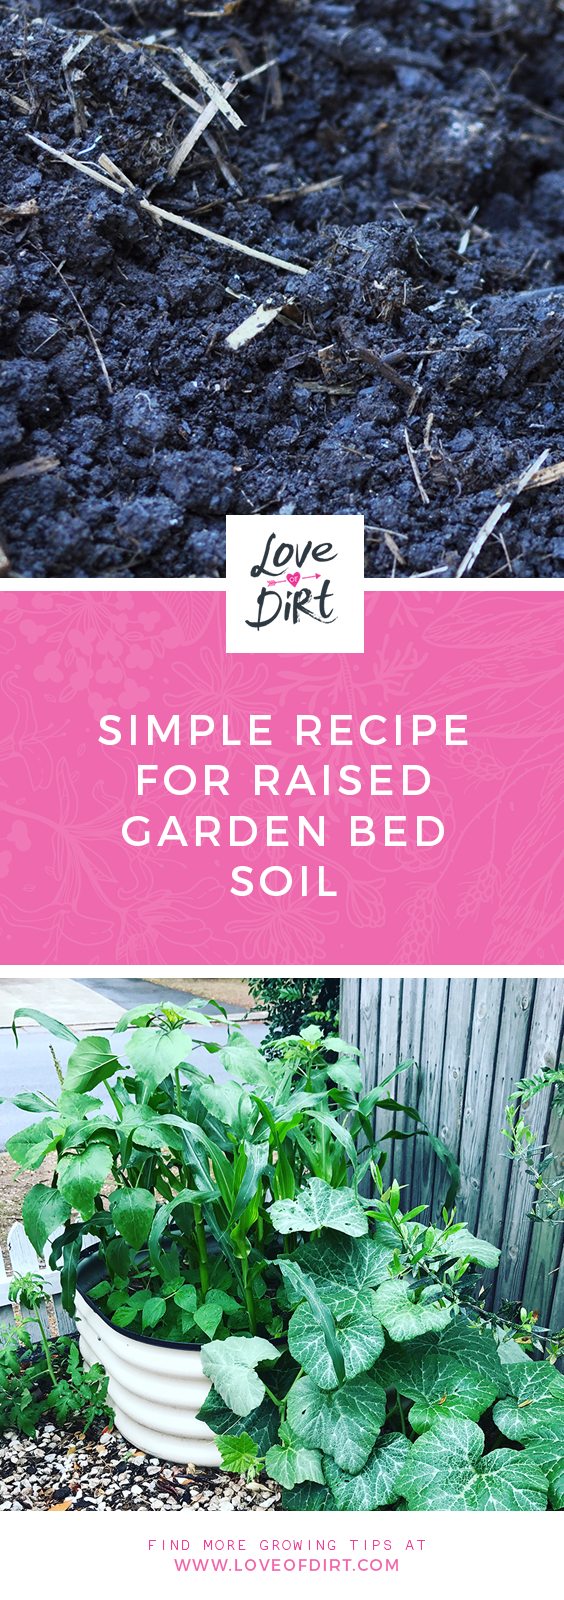 Soil recipe for raised garden beds (With images) Raised